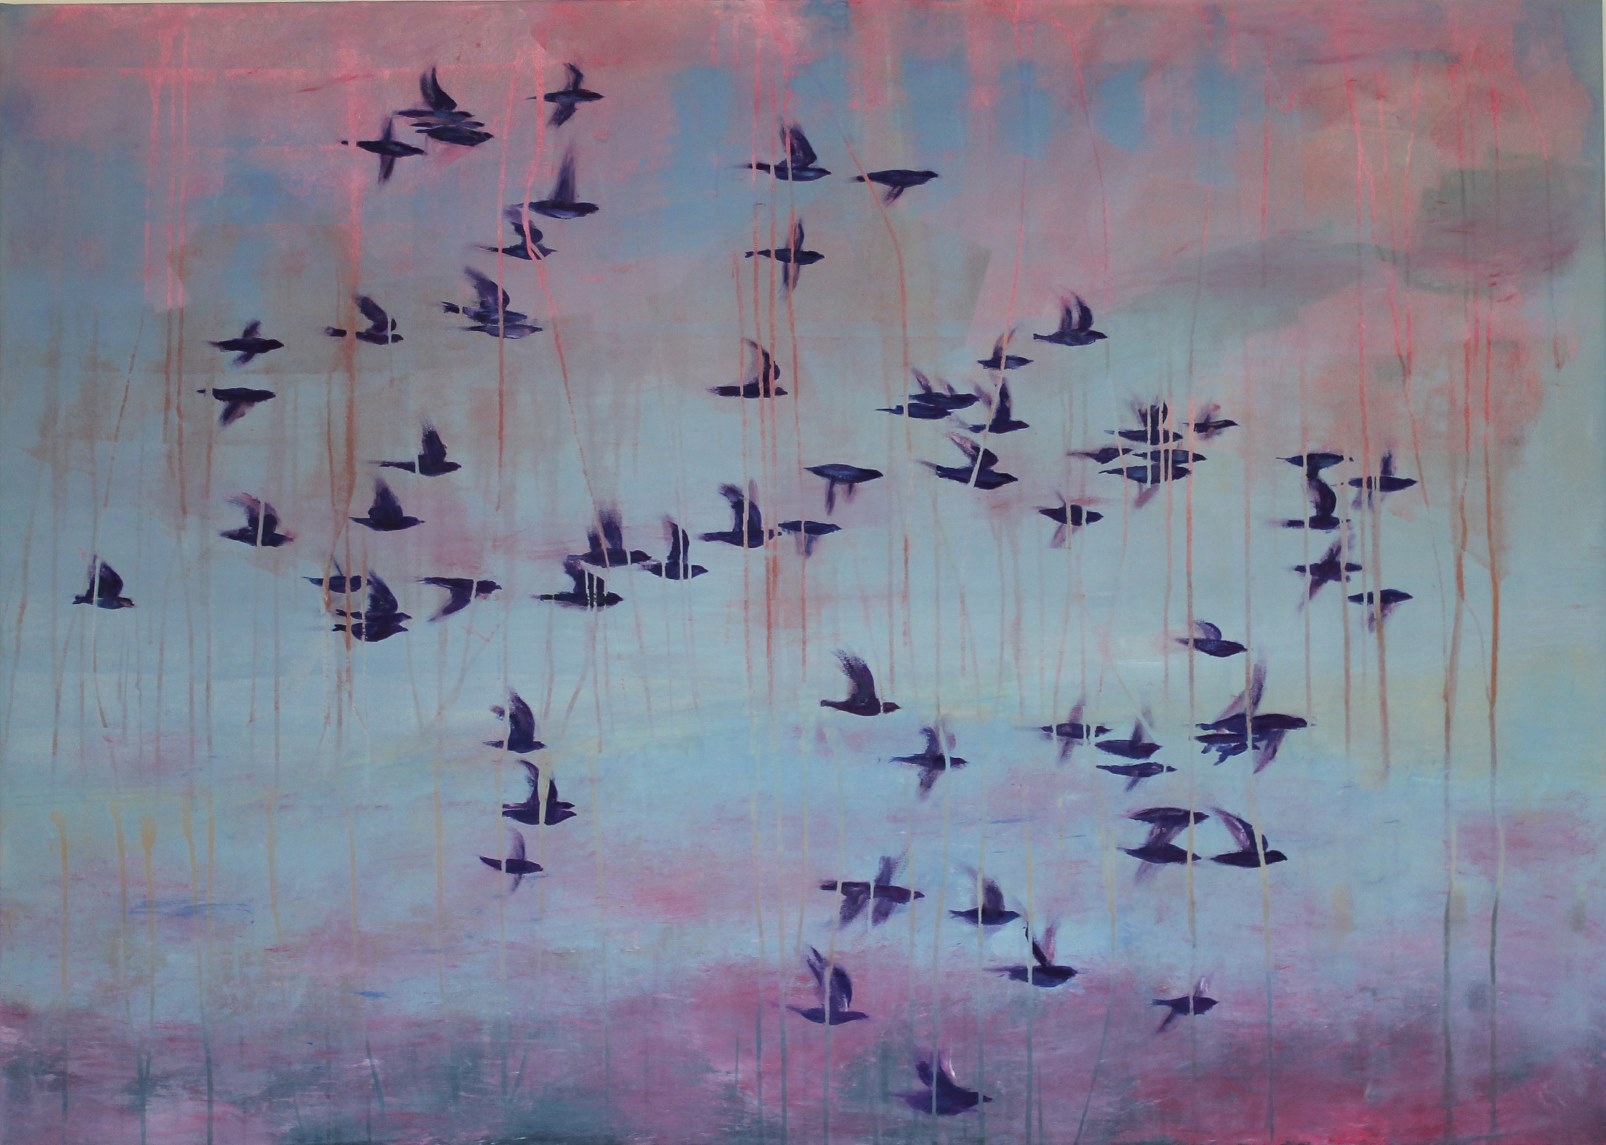 Blue Birds, 2015, mixed media, 100 x 140 cm - sold